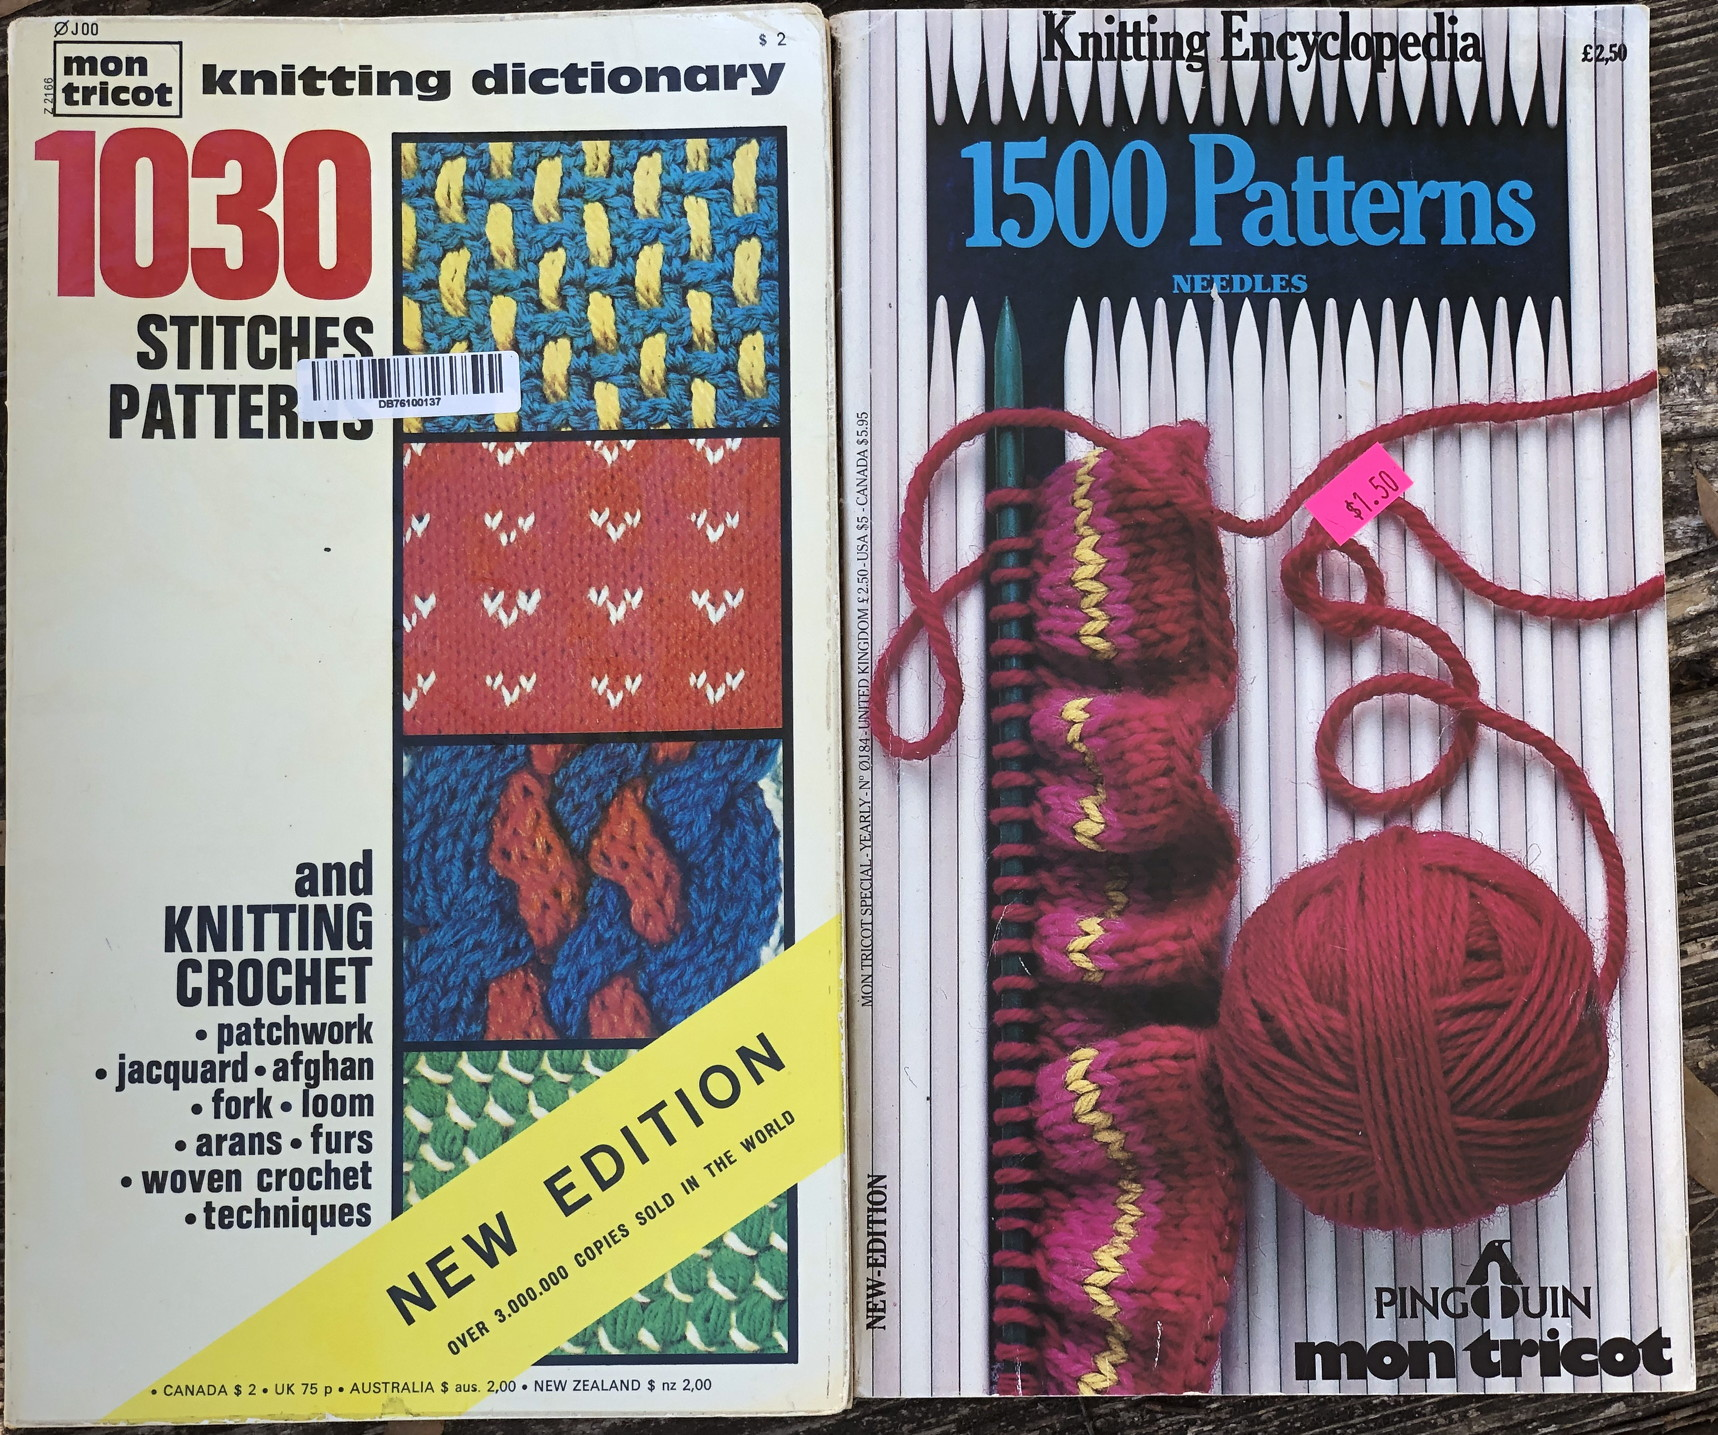 photo of 'Mon Tricot Knitting Dictionary: 1030 Stitches Patterns' and 'Mon Tricot Knitting Encyclopedia: 1500 Patterns'.